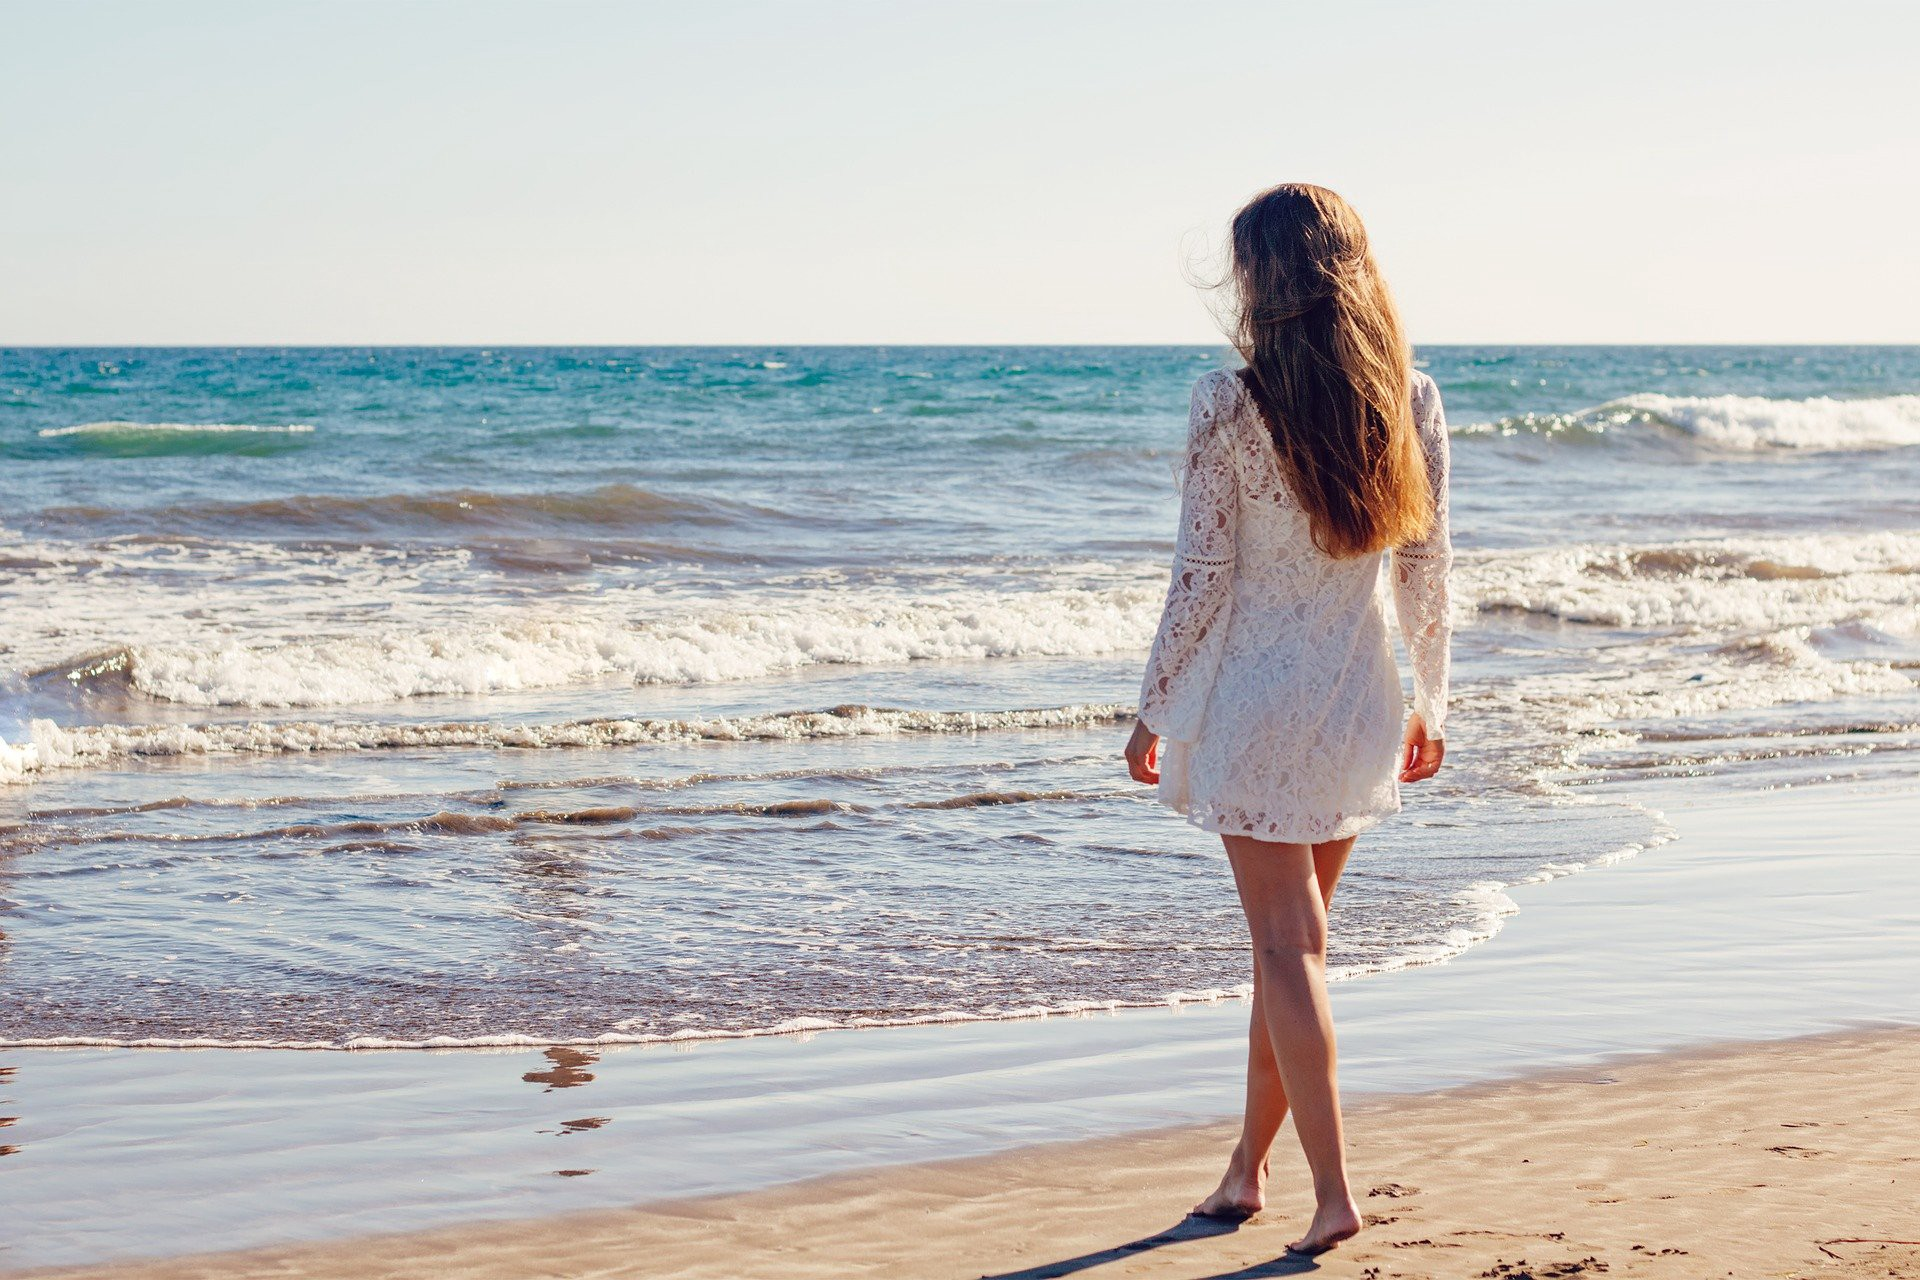 Woman on a beach looking out over the ocean. Why Is Finding Our Purpose Such a Struggle?